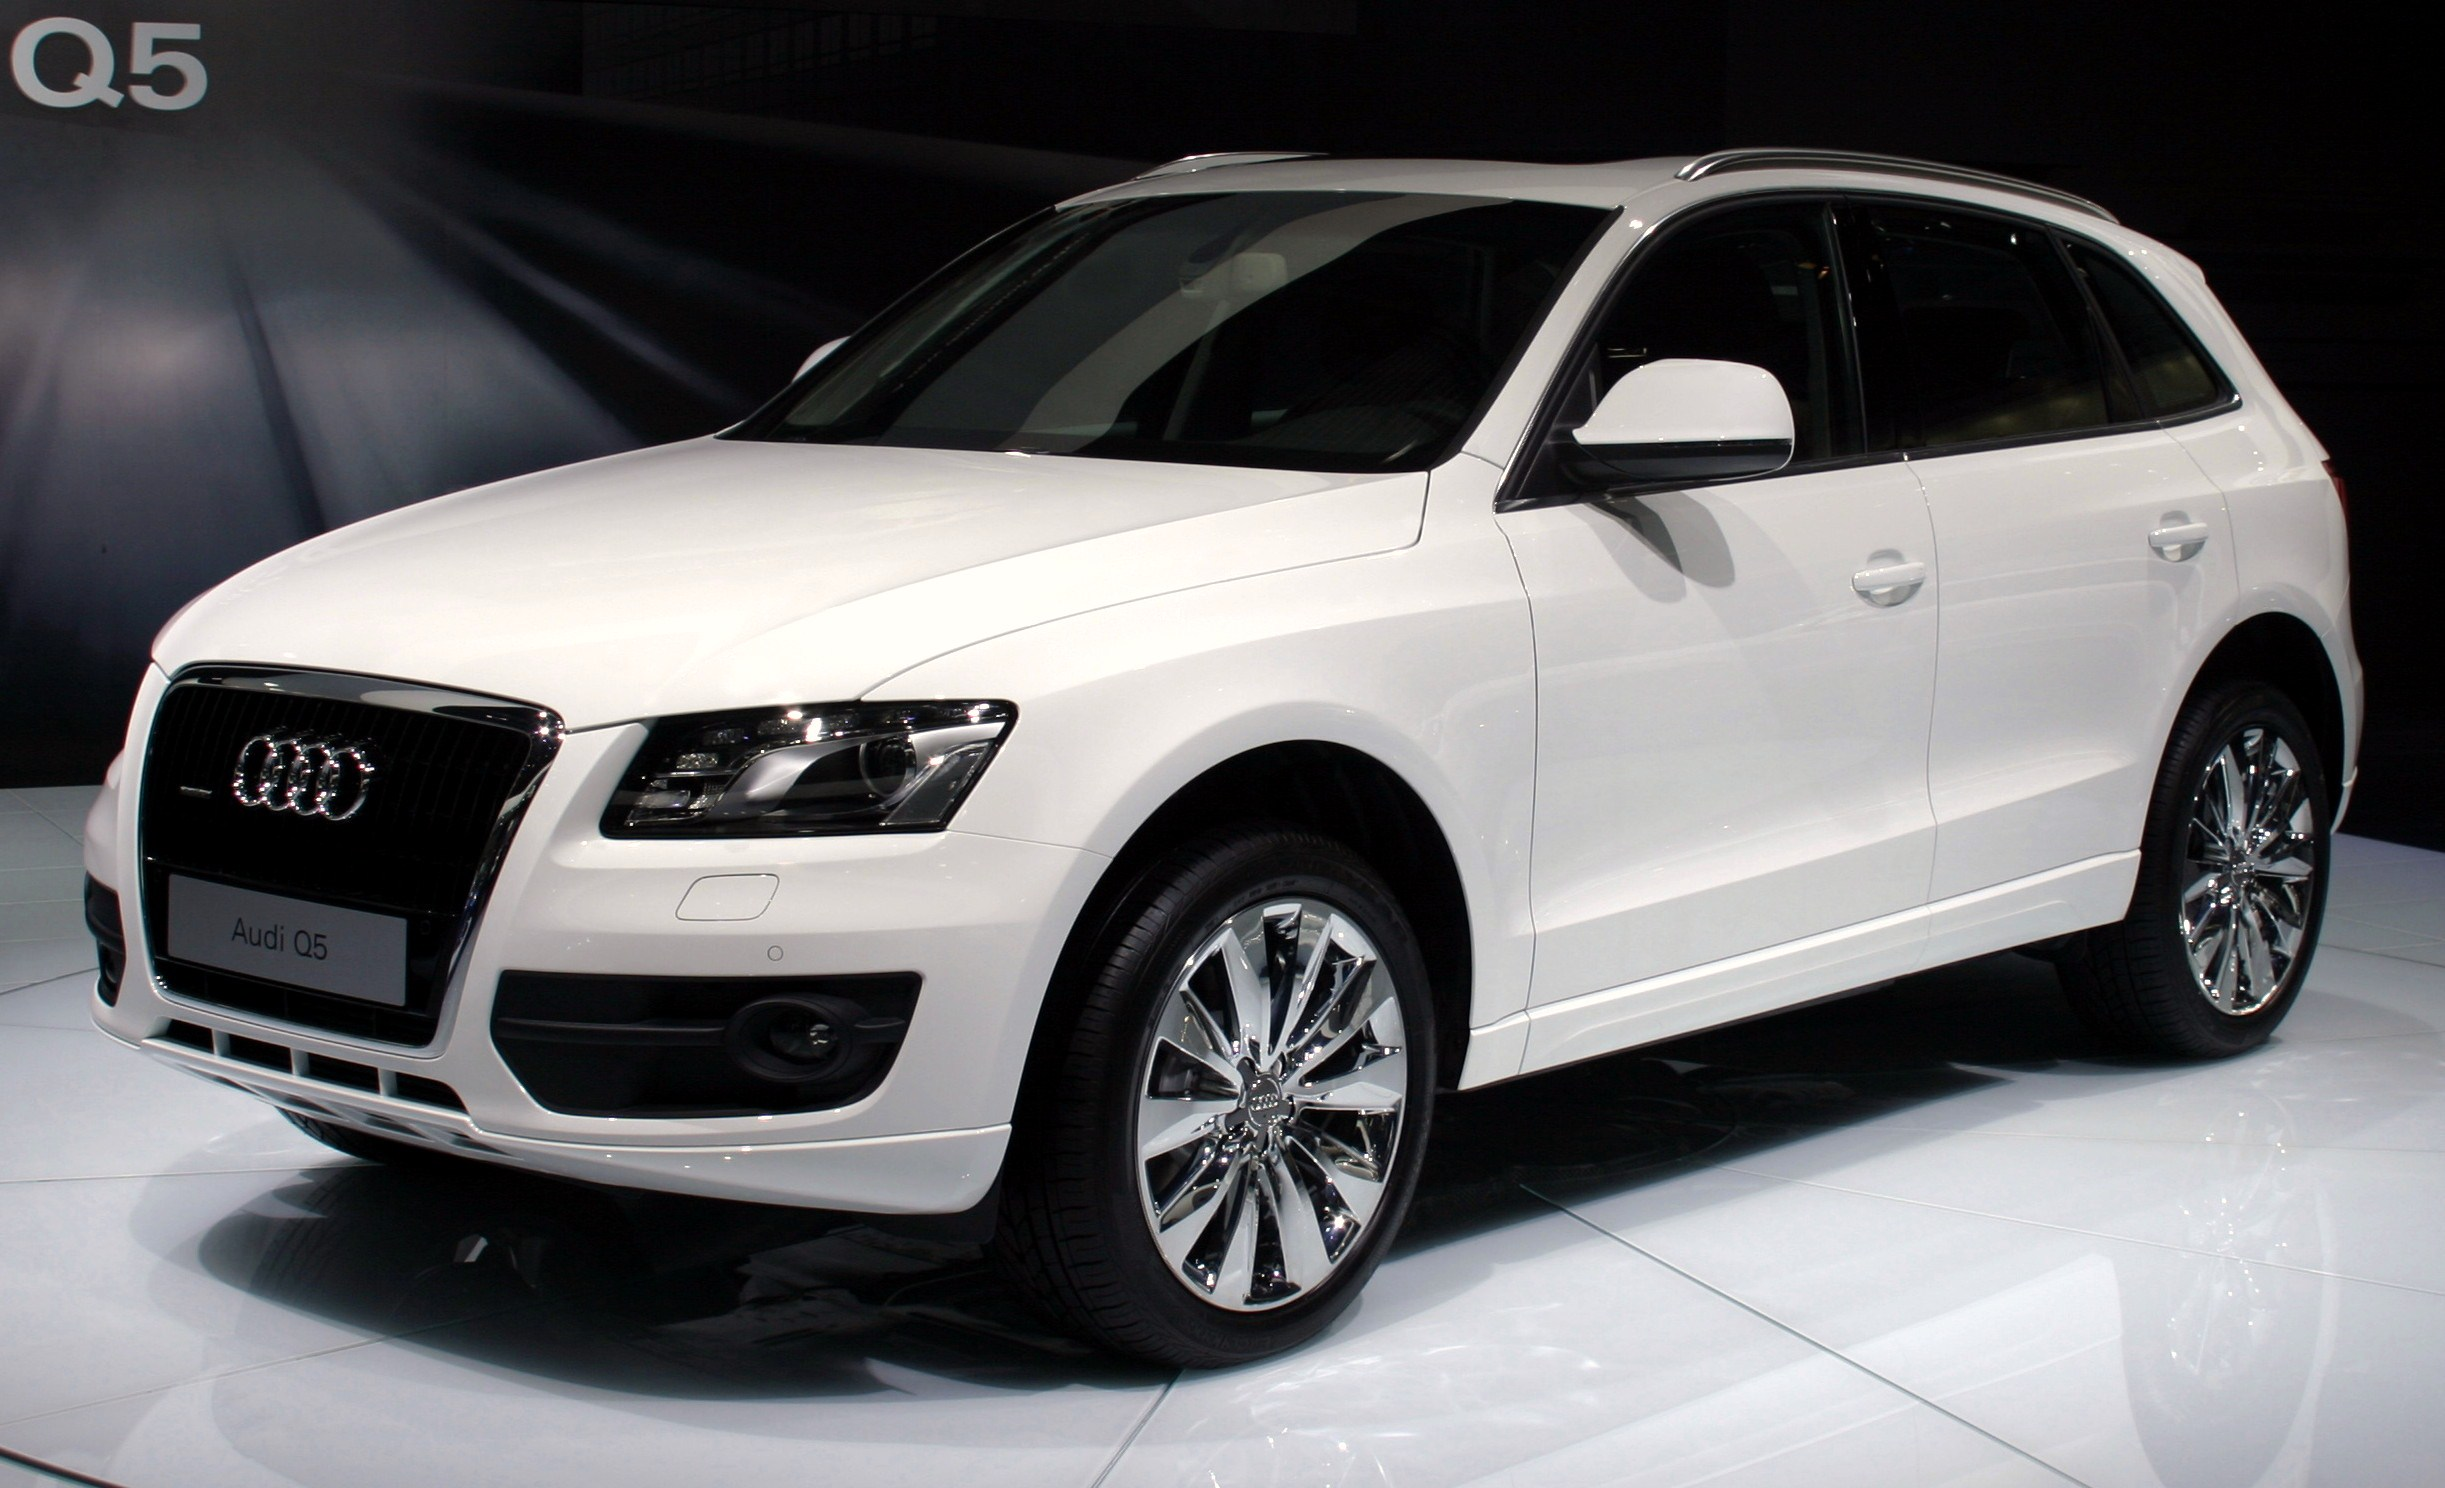 Audi Q5 Hair2014 Blogspot Com